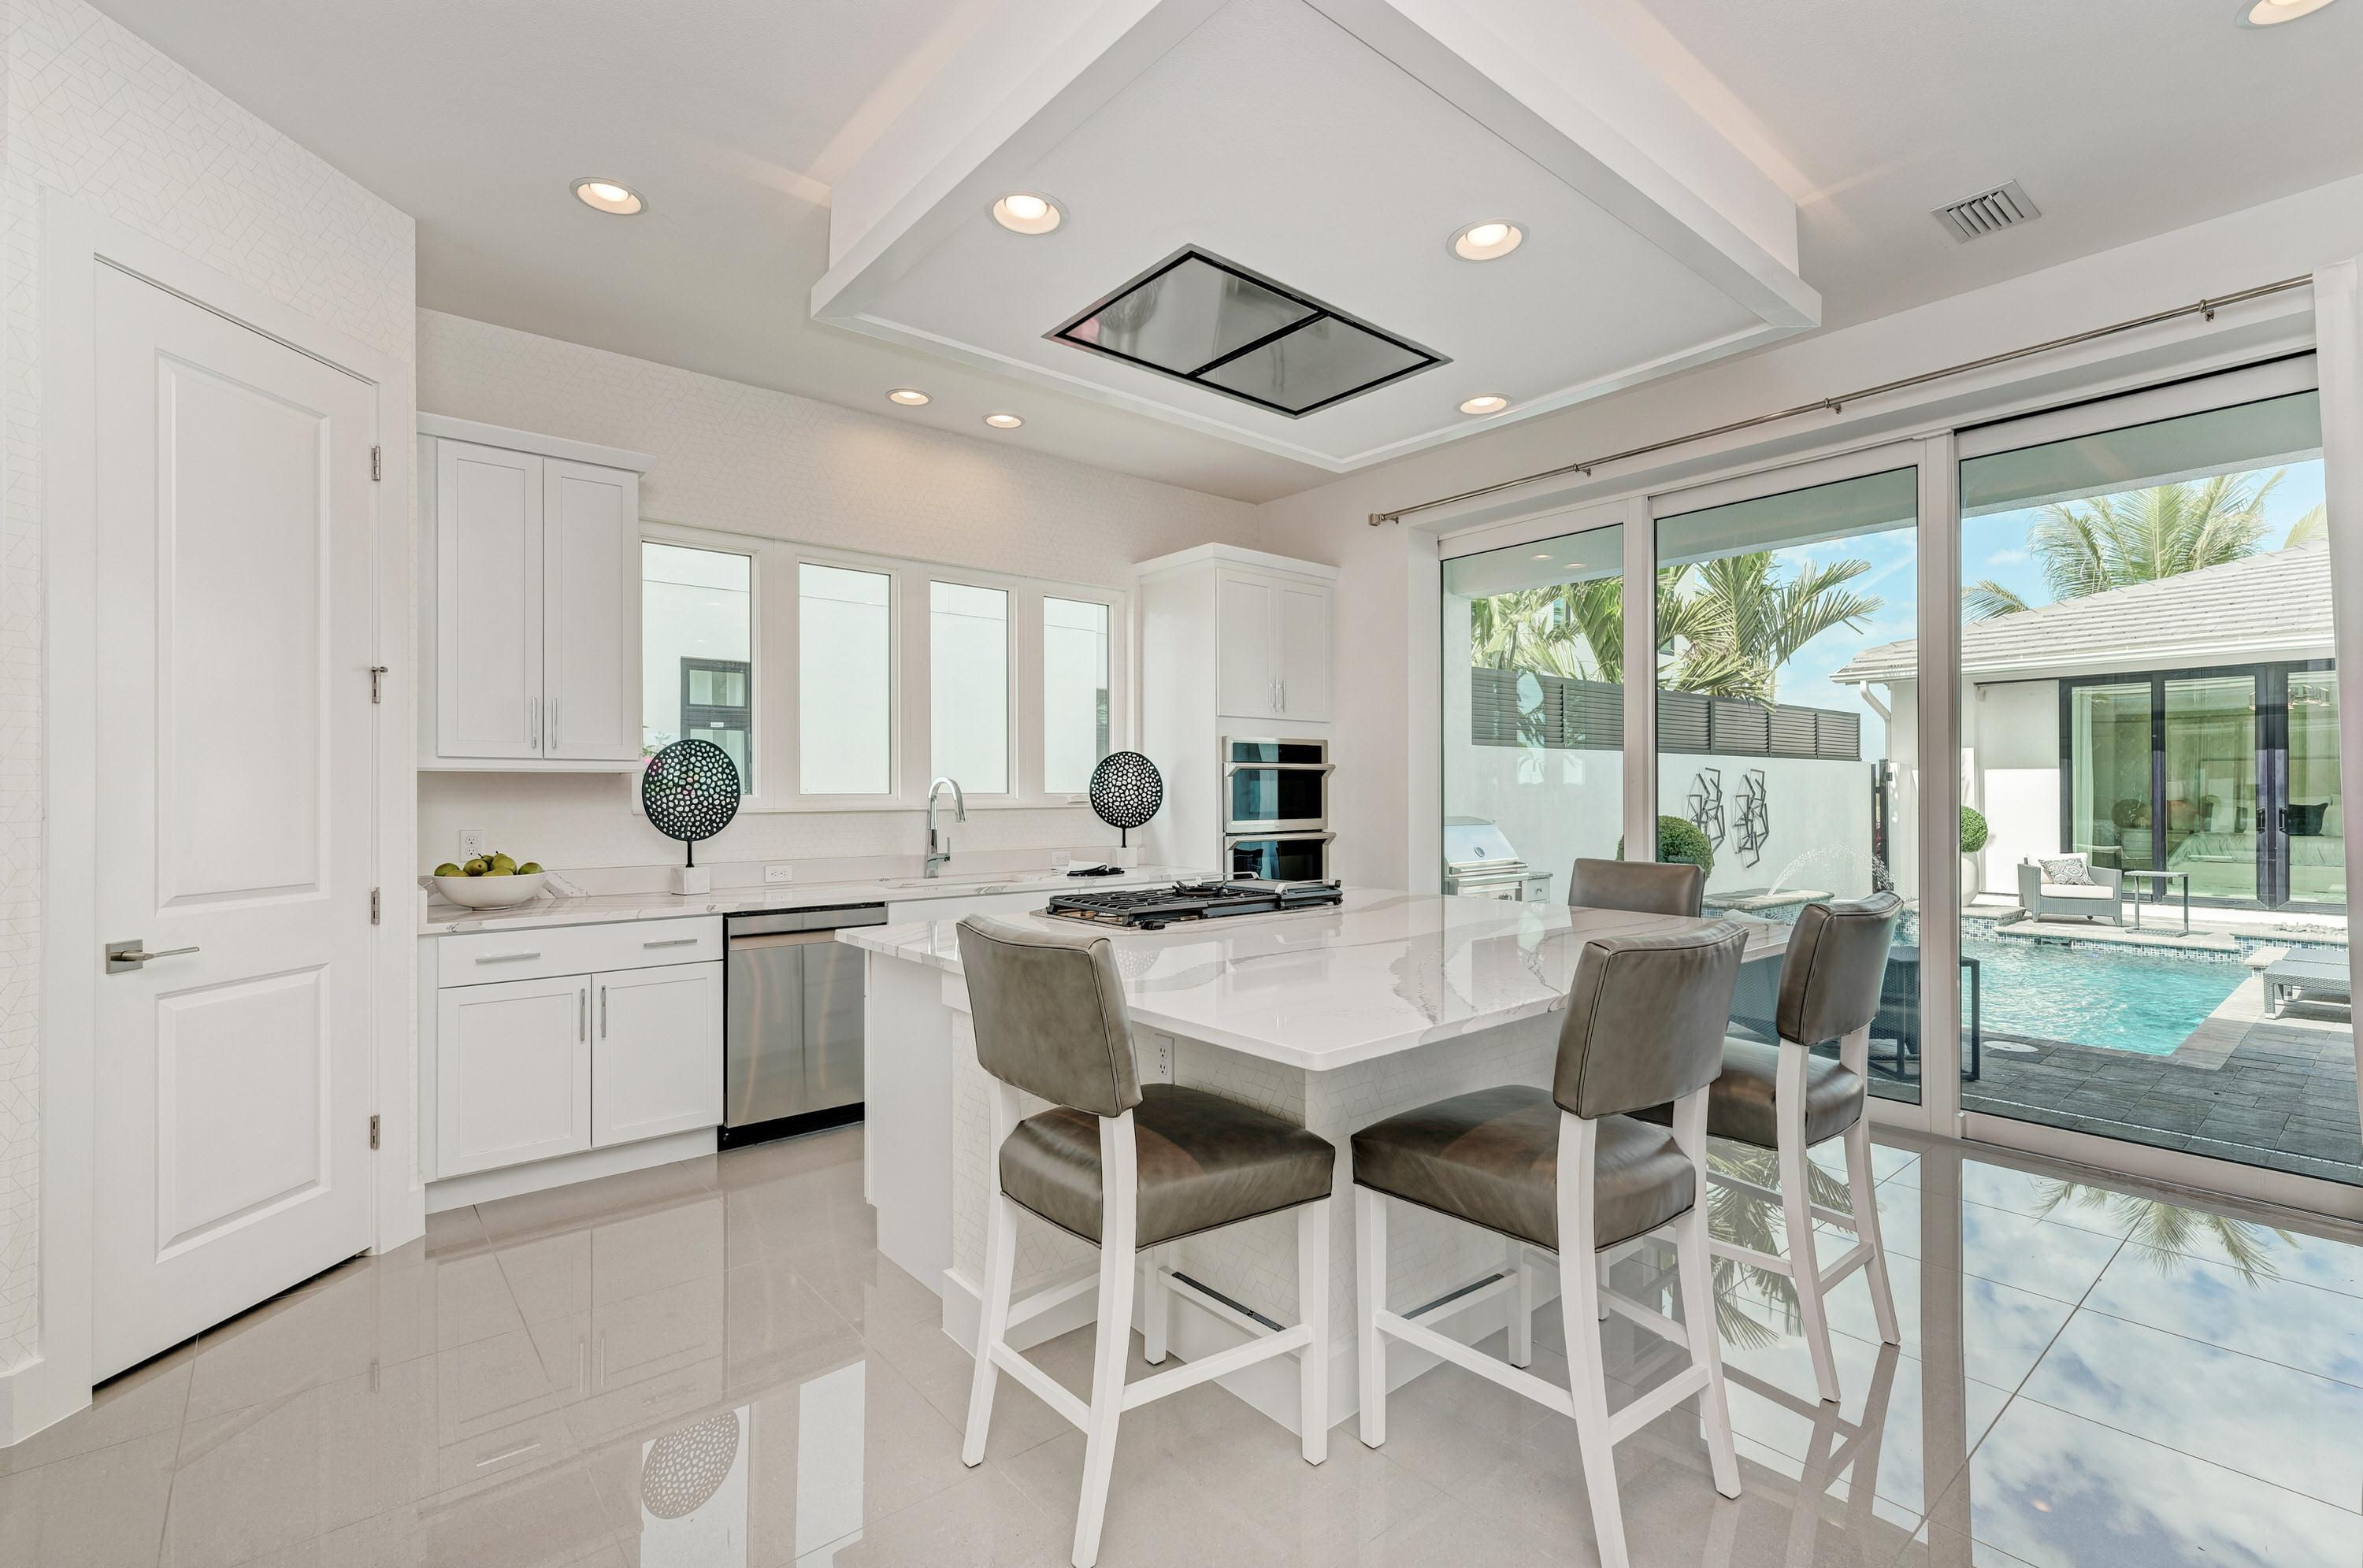 Kitchen featured in the Cat Claw By Medallion Home in Sarasota-Bradenton, FL